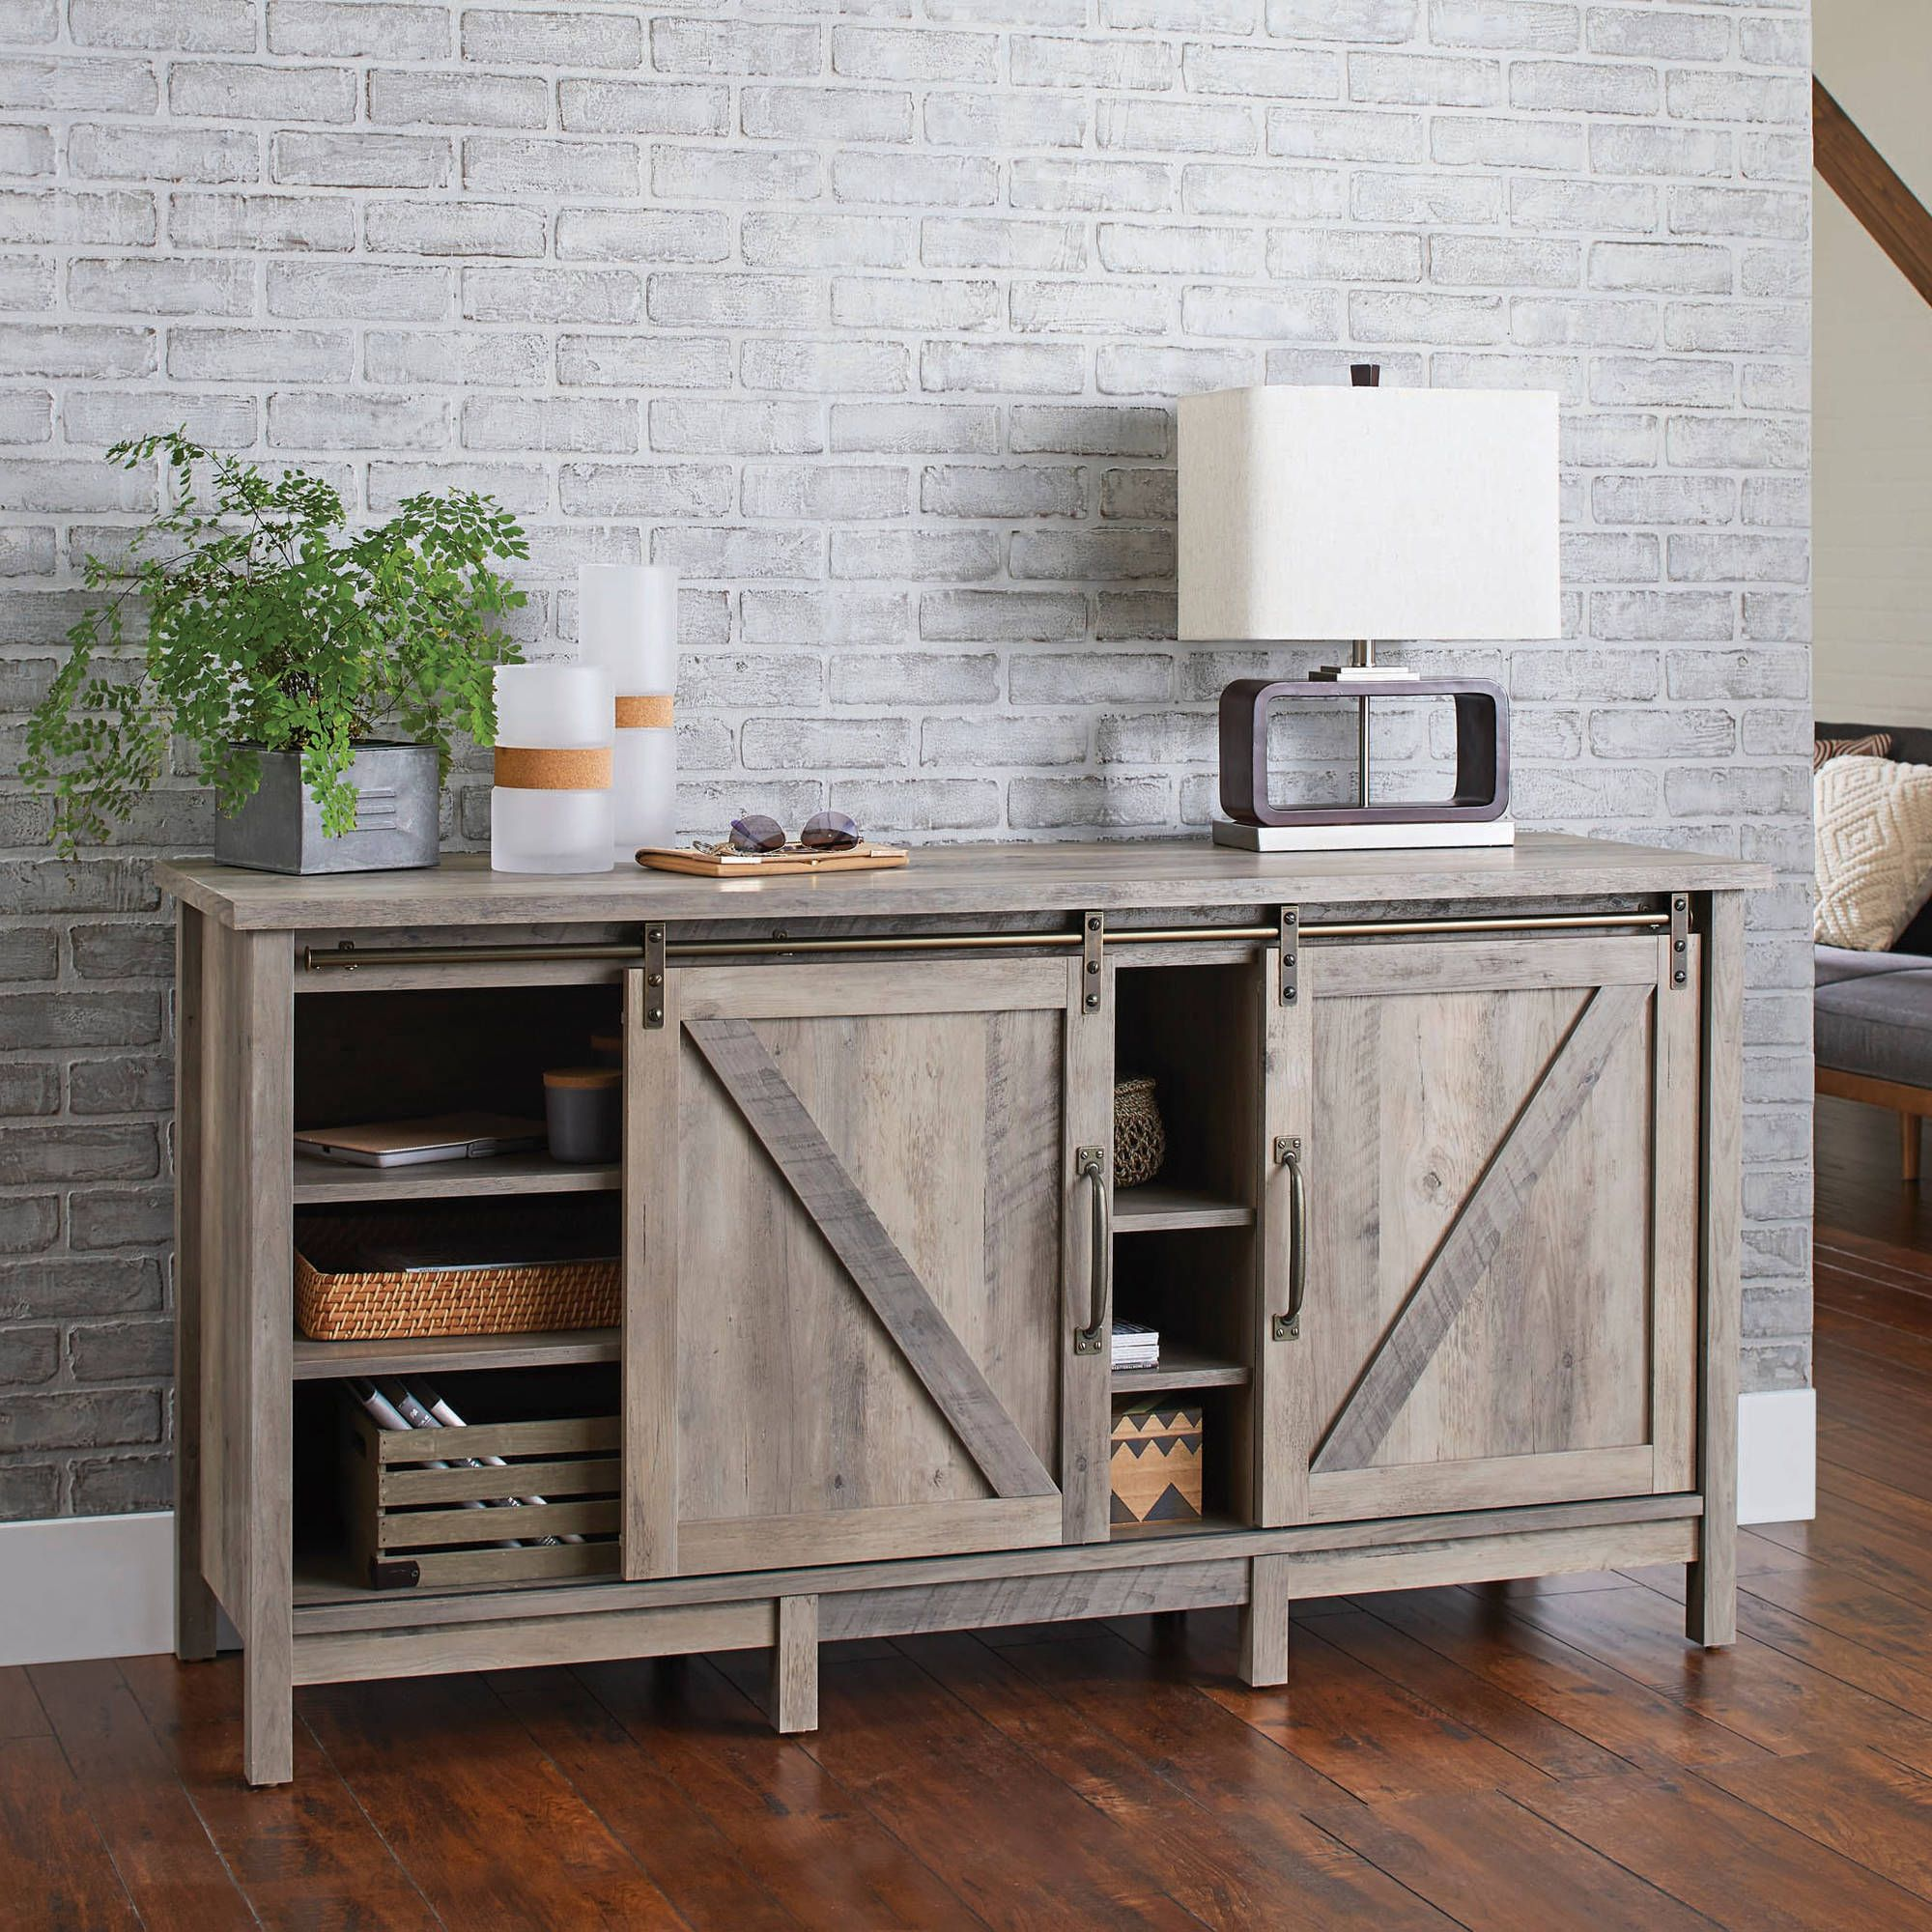 better homes and gardens tv stand. Better Homes And Gardens Modern Farmhouse TV Stand For TVs Up To 60\ Tv D